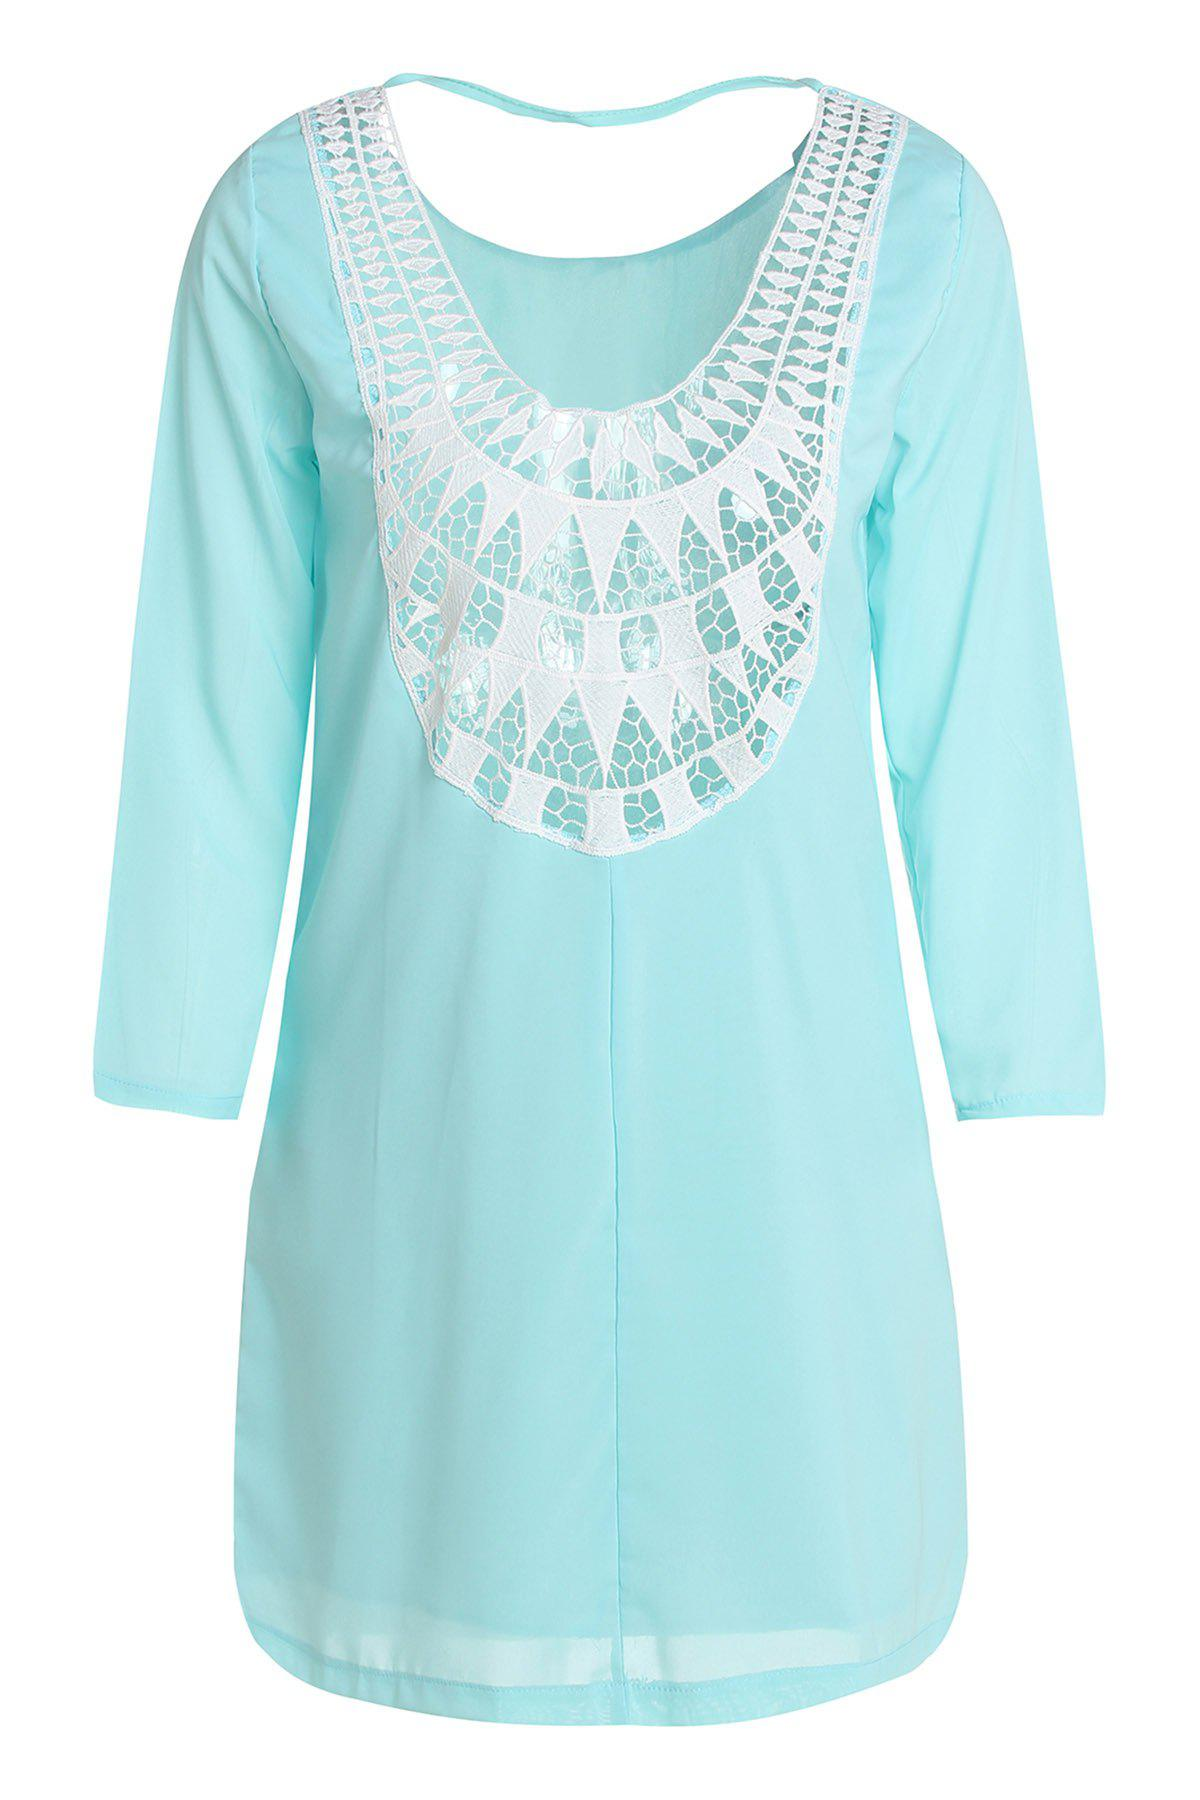 Fashionable Scoop Collar Long Sleeve Hollow Out Spliced Women's Dress - LIGHT BLUE XL